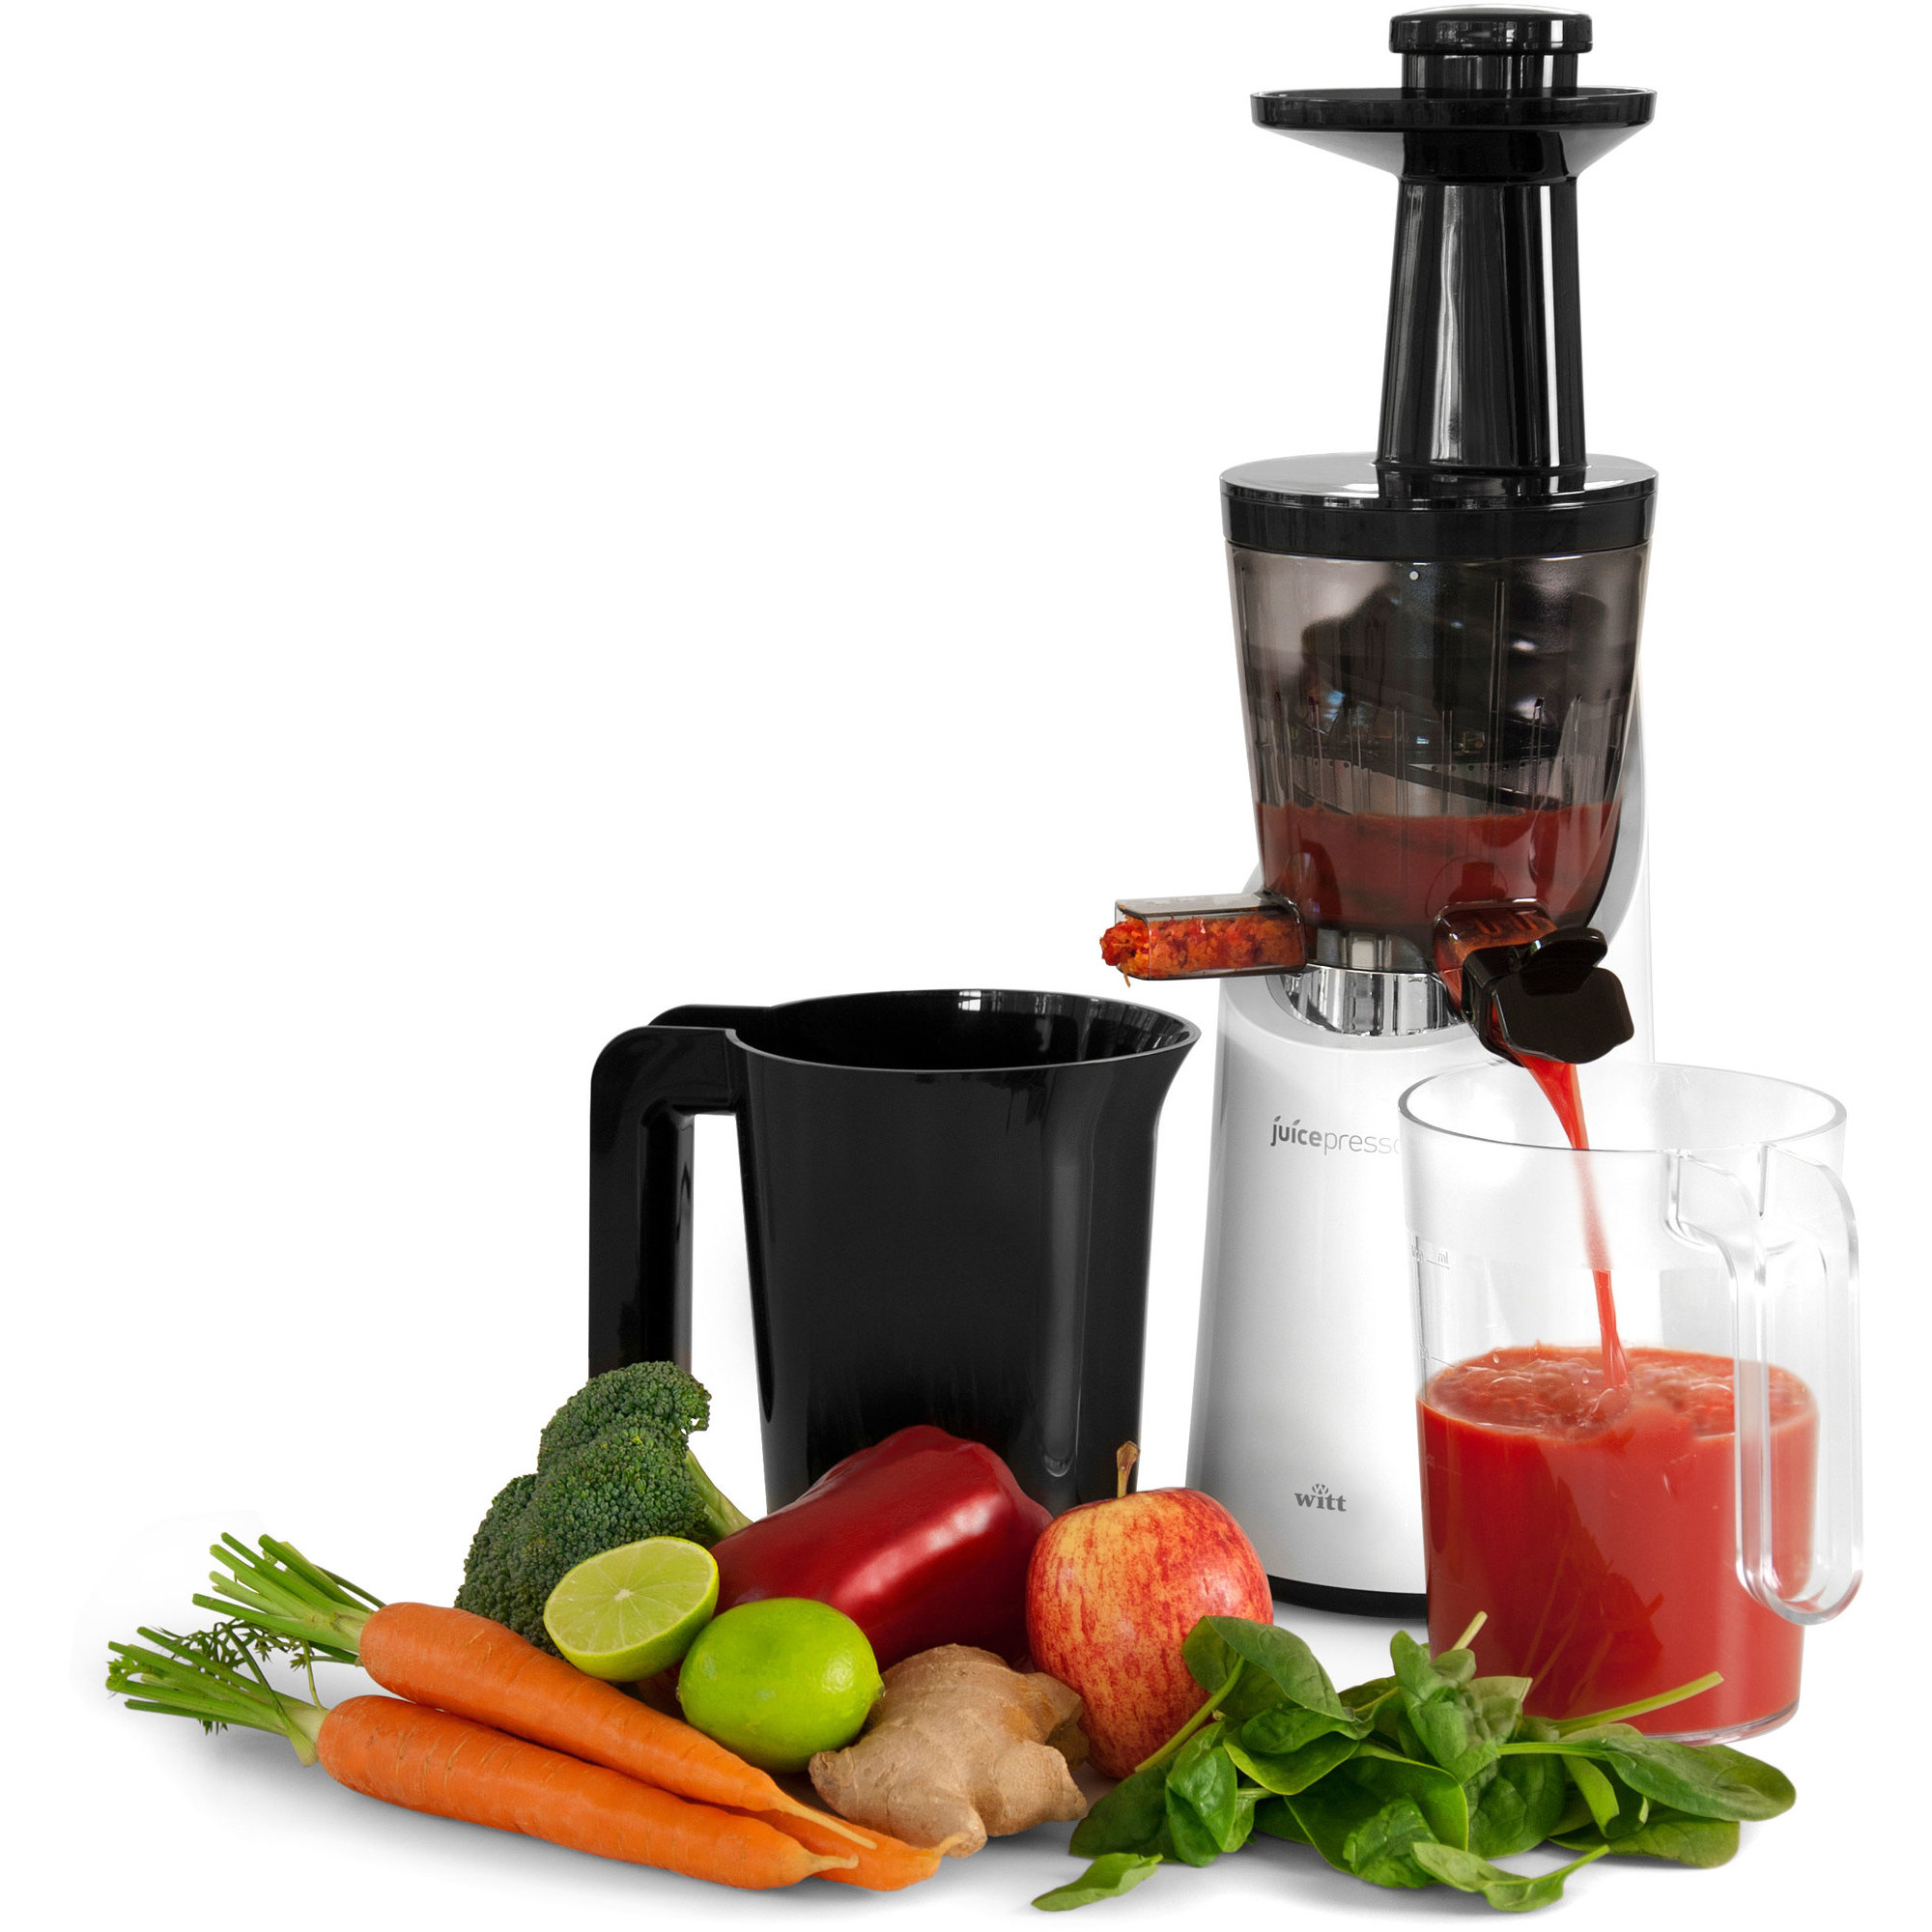 Juice Med Slow Juicer : Smoothie Juicepresso Slow Juicer fra Witt Gratis Levering